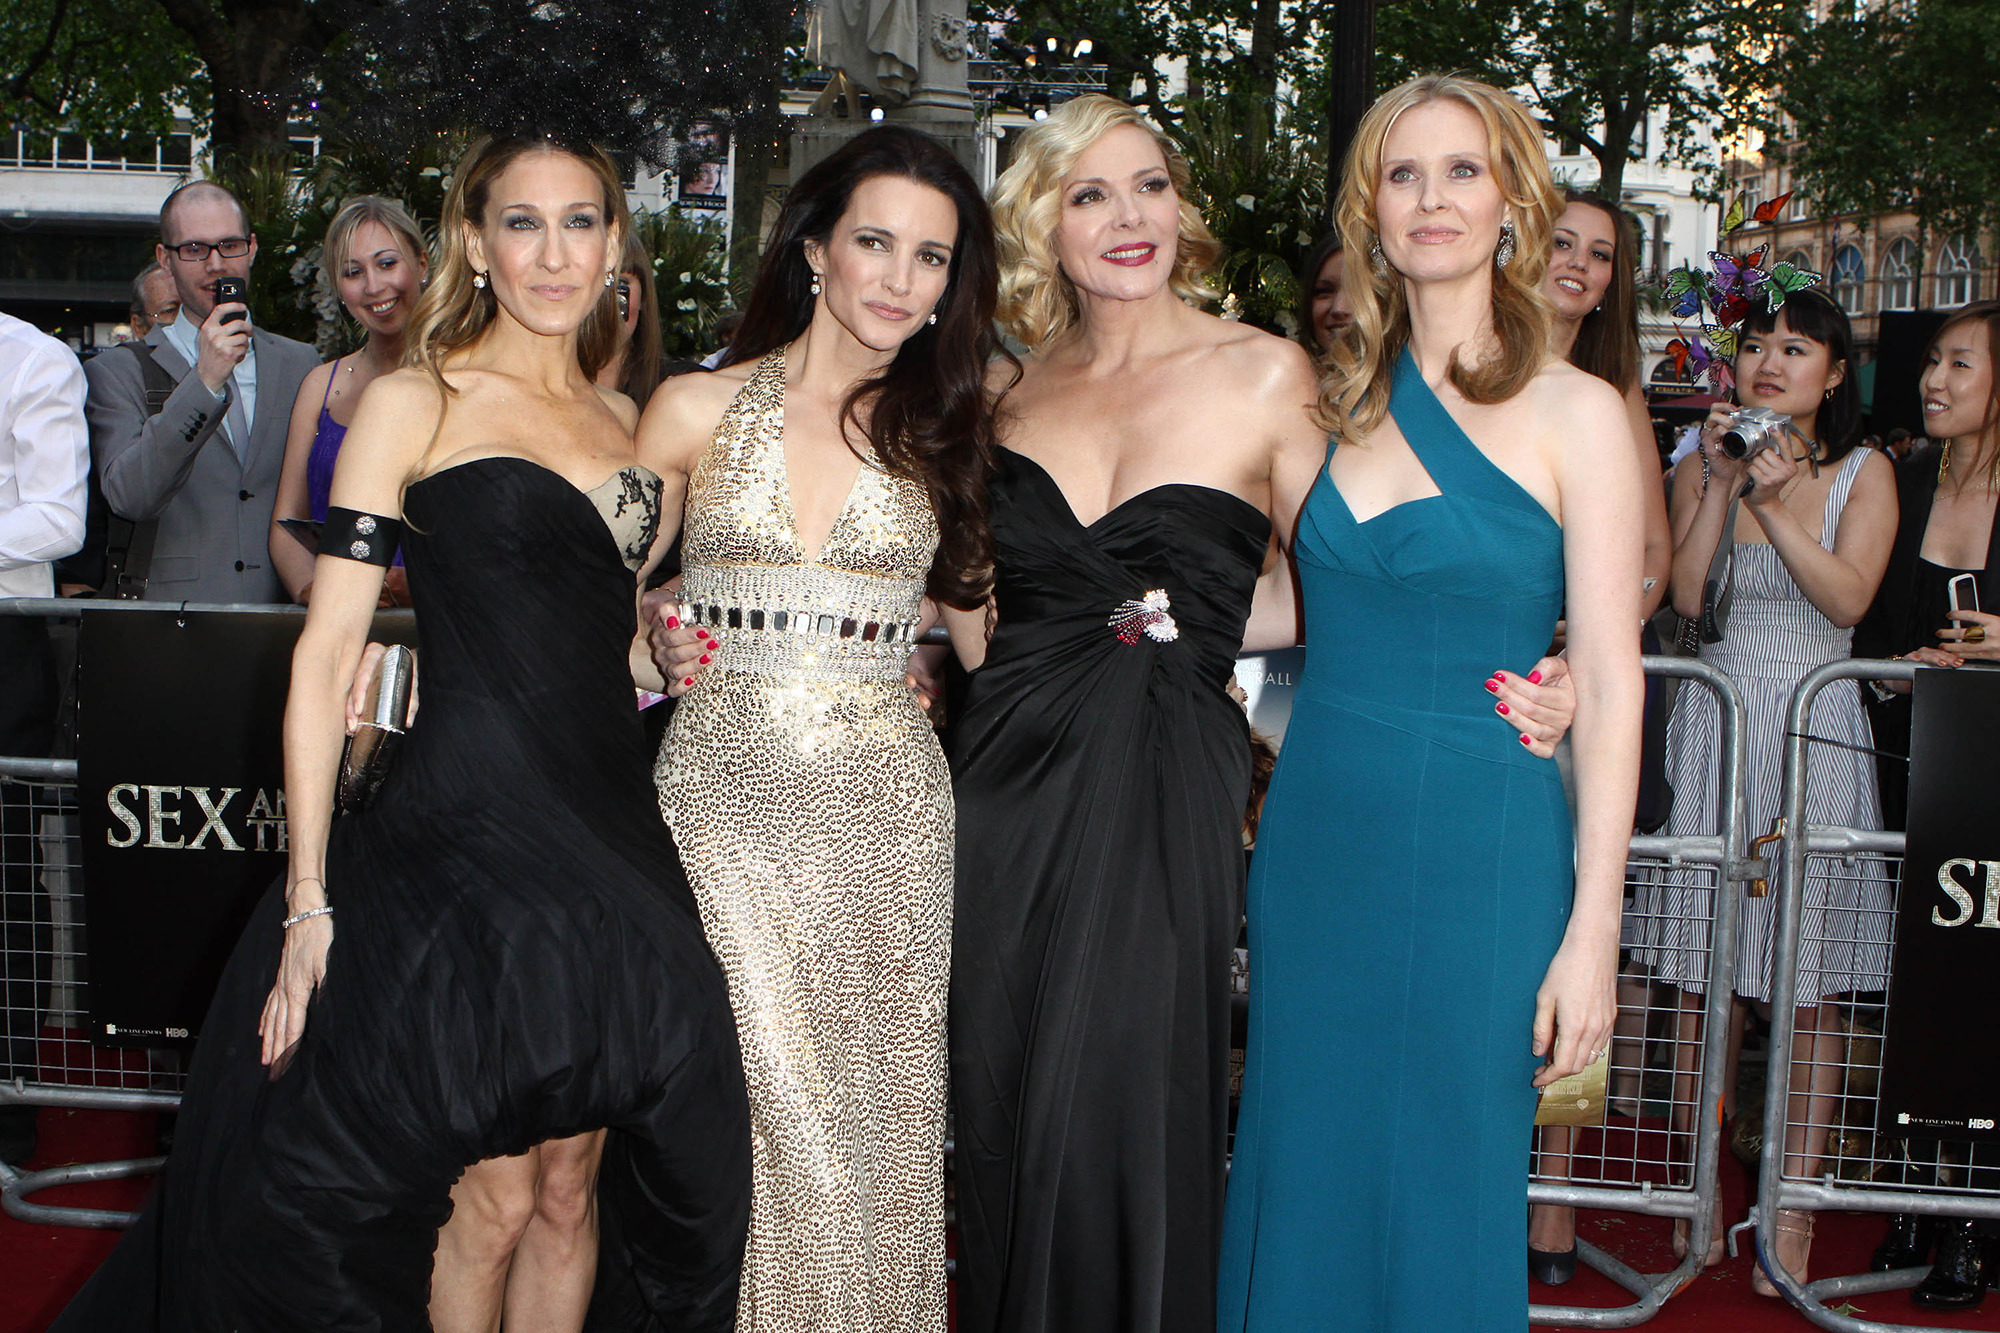 Sarah Jessica Parker, Kristin Davis, Kim Cattrall and Cynthia Nixon attends the UK premiere of Sex And The City 2 at Odeon Leicester Square on May 27, 2010 in London, England. (Photo by Fred Duval/FilmMagic)